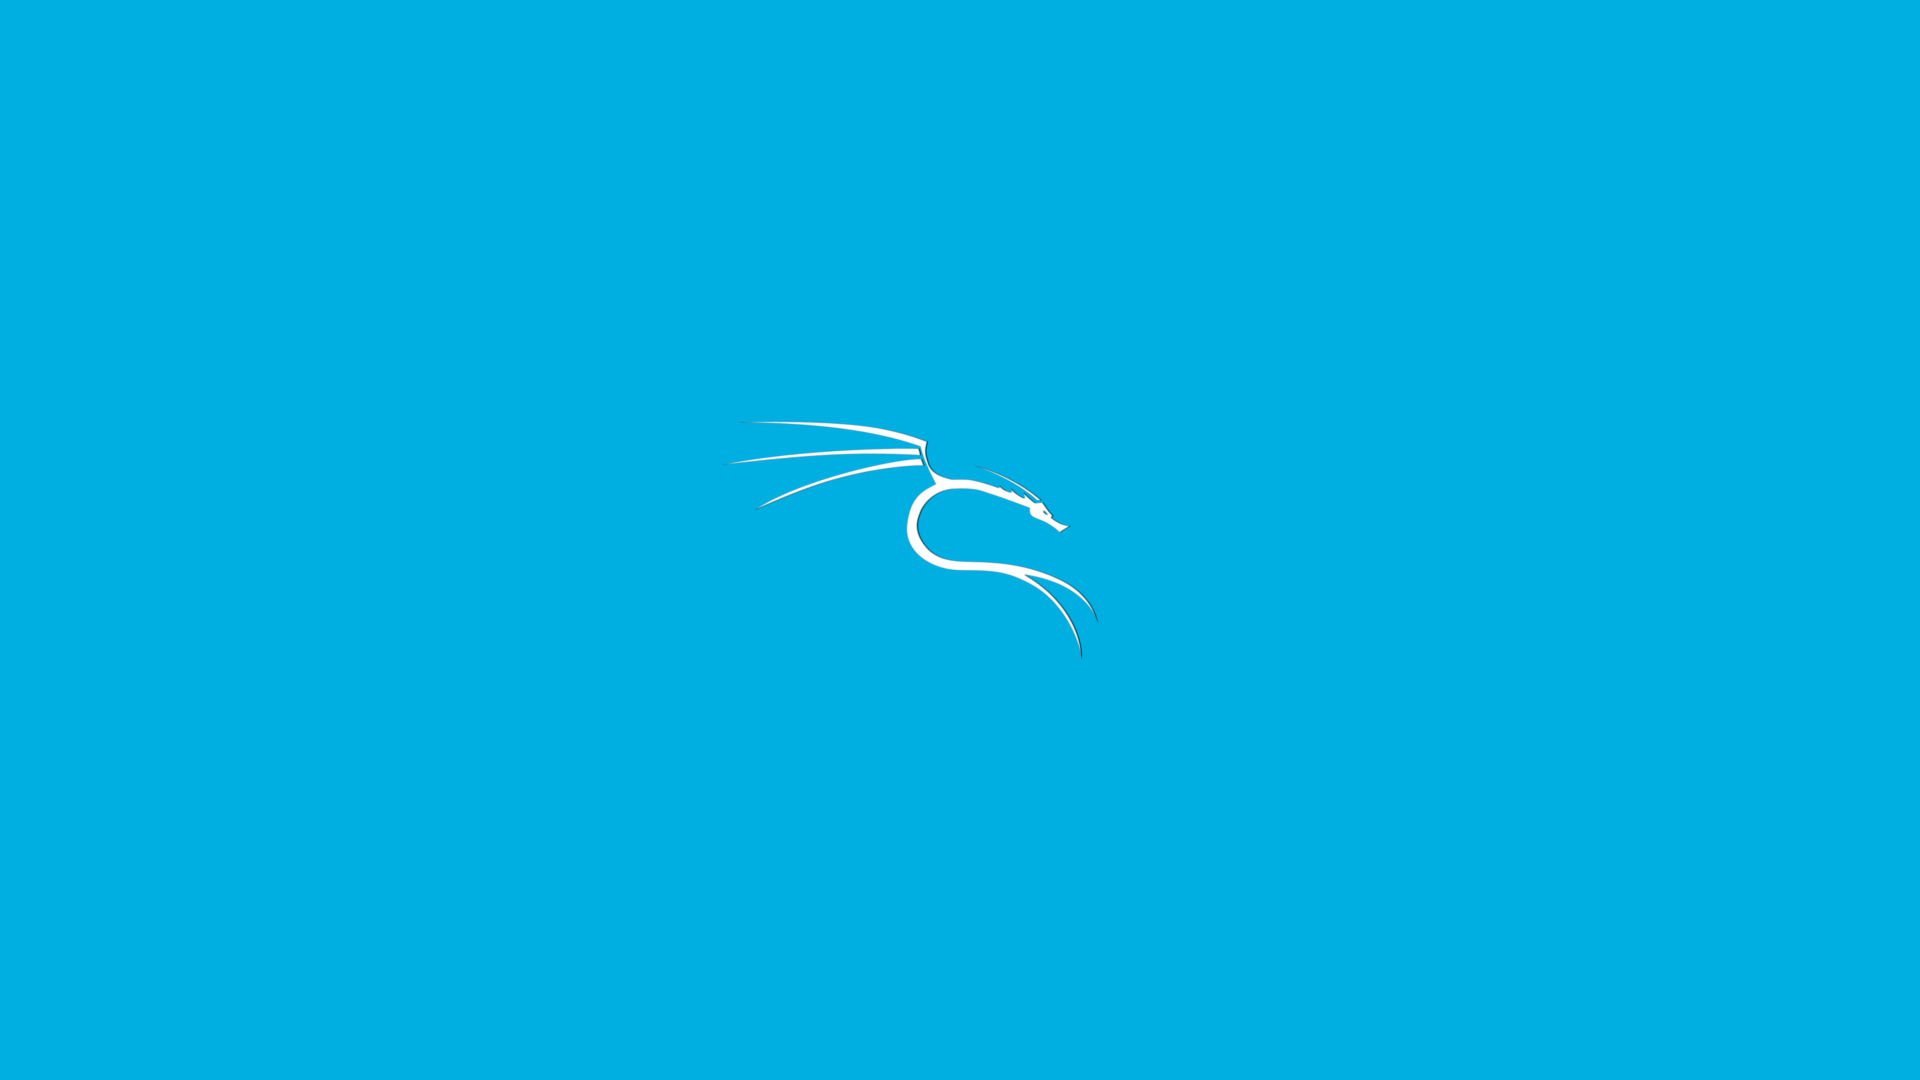 Github Dorianprokali Linux Wallpapers A Set Of Dedicated